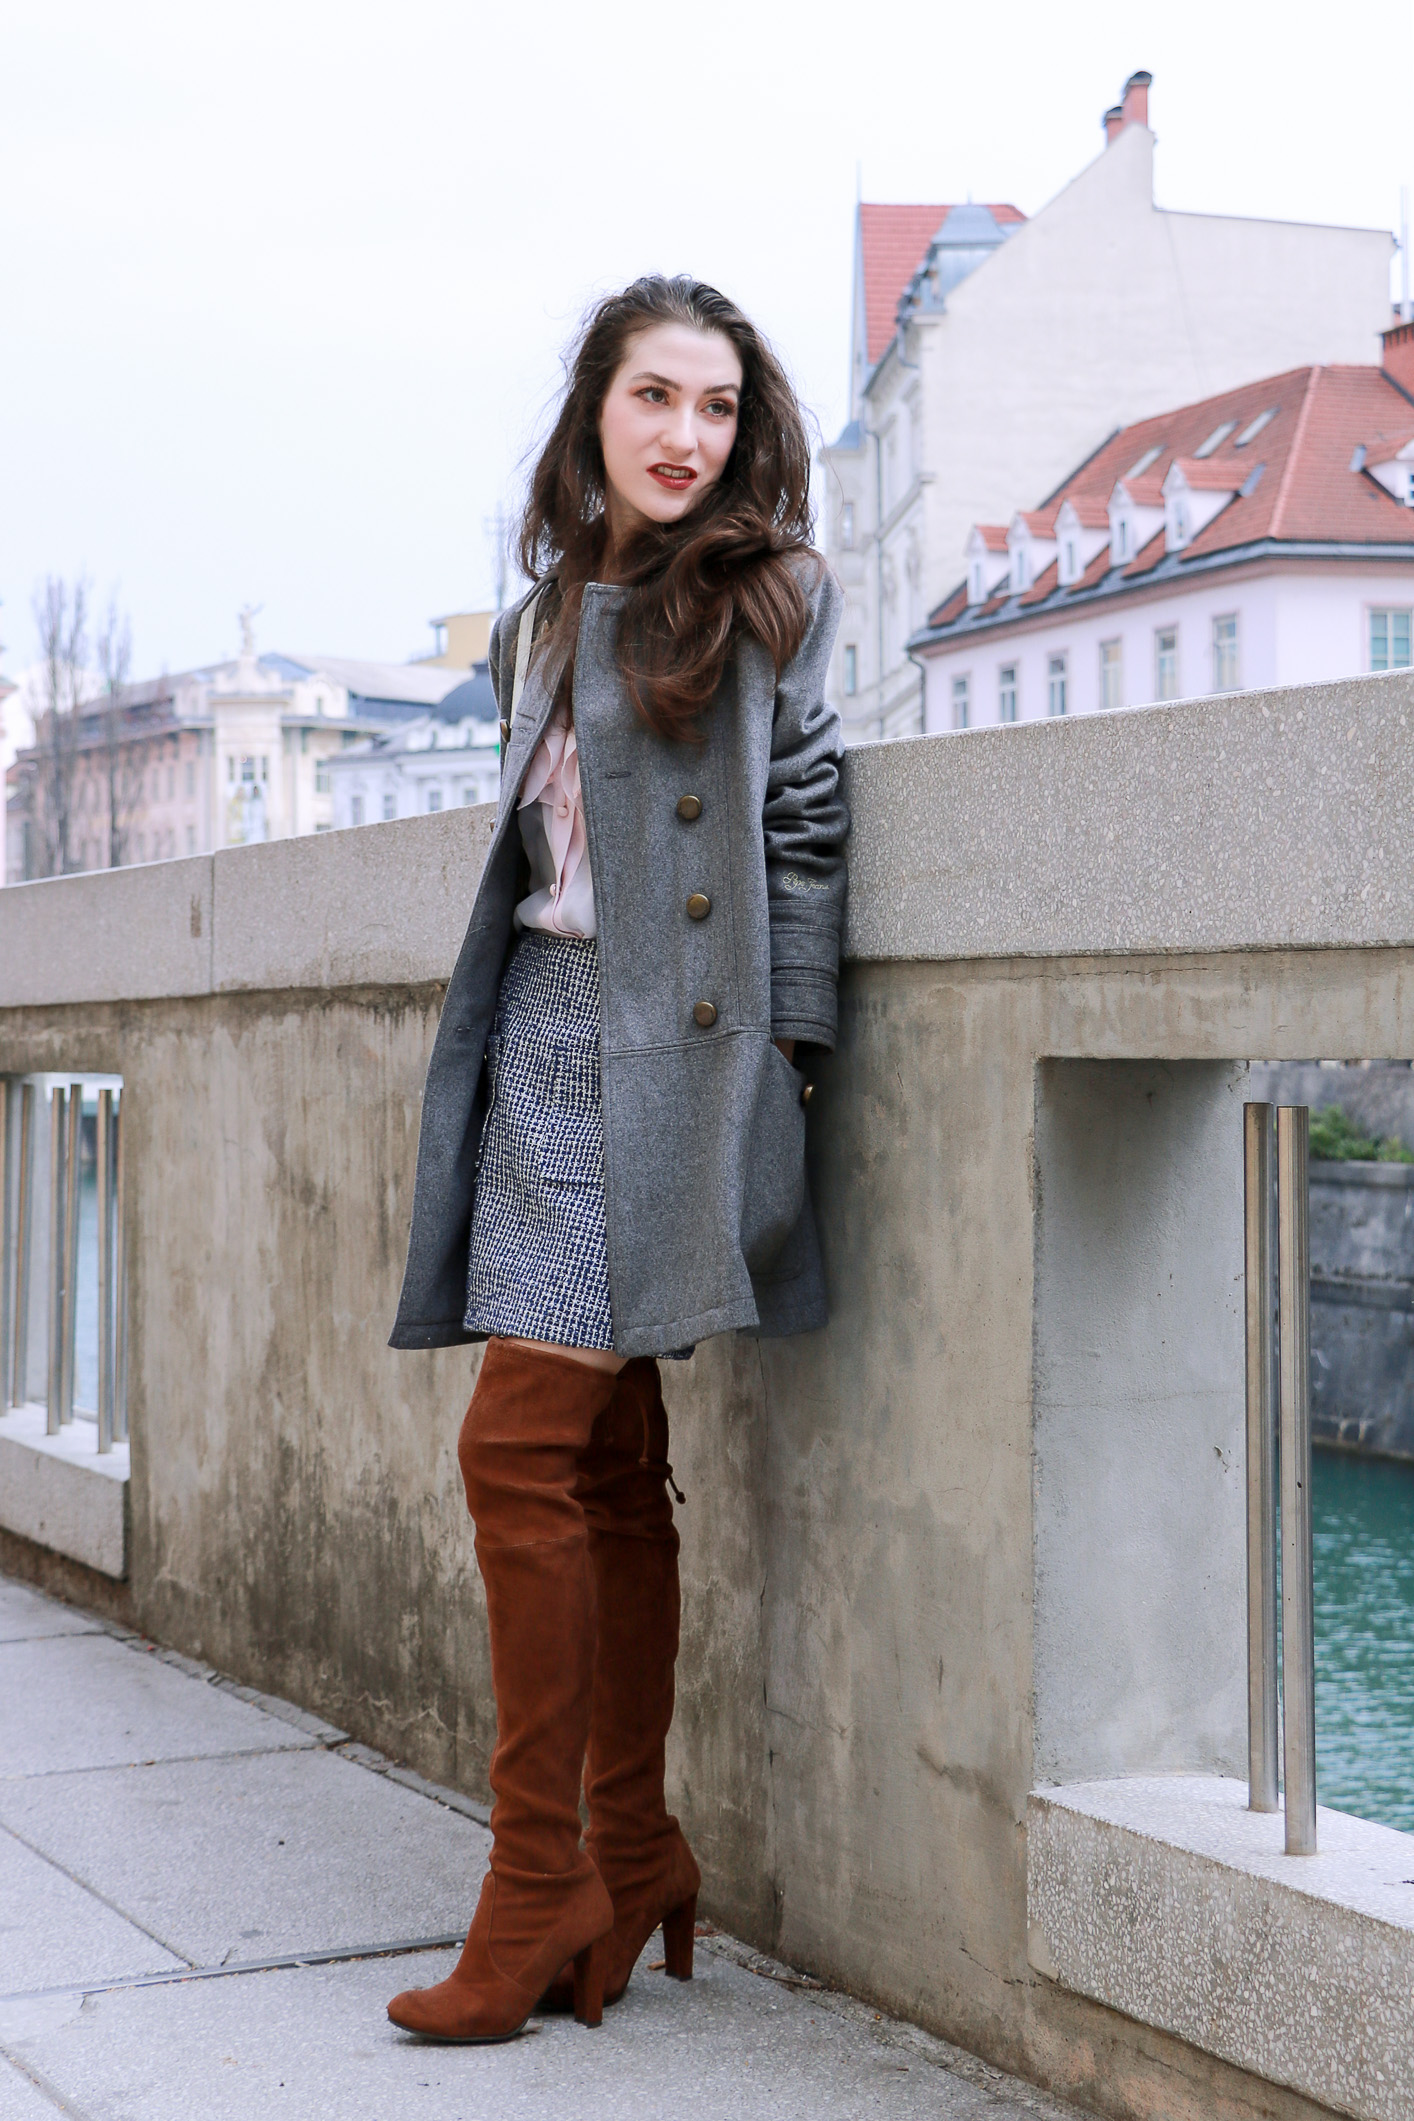 Fashion blogger Veronika Lipar of Brunette From Wall Street sharing how to wear over the knee boots this spring